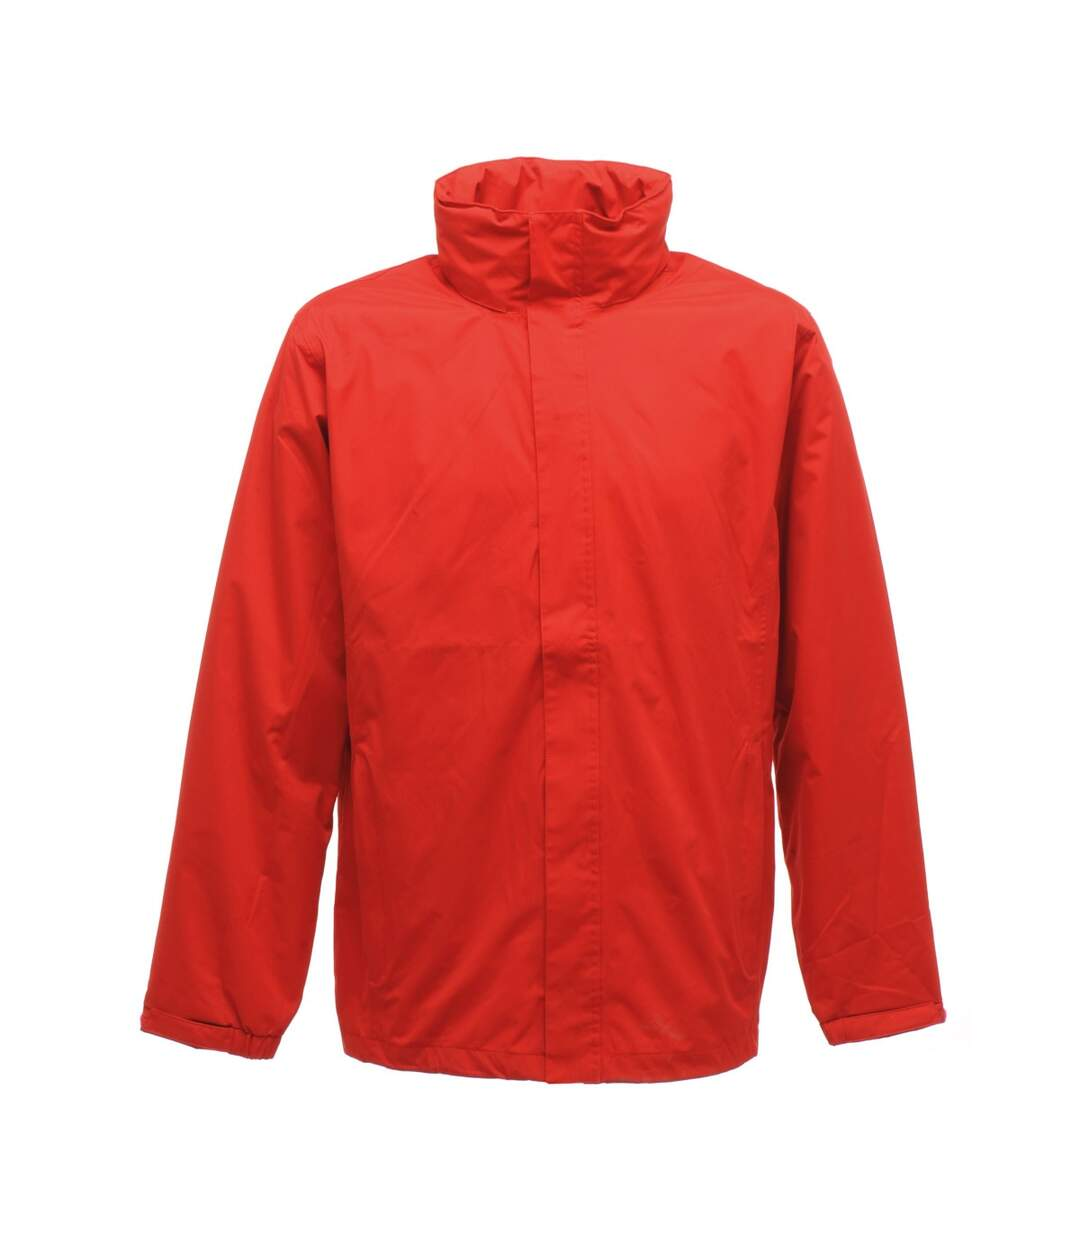 Regatta Mens Standout Ardmore Jacket (Waterproof & Windproof) (Classic Red) - UTBC3041